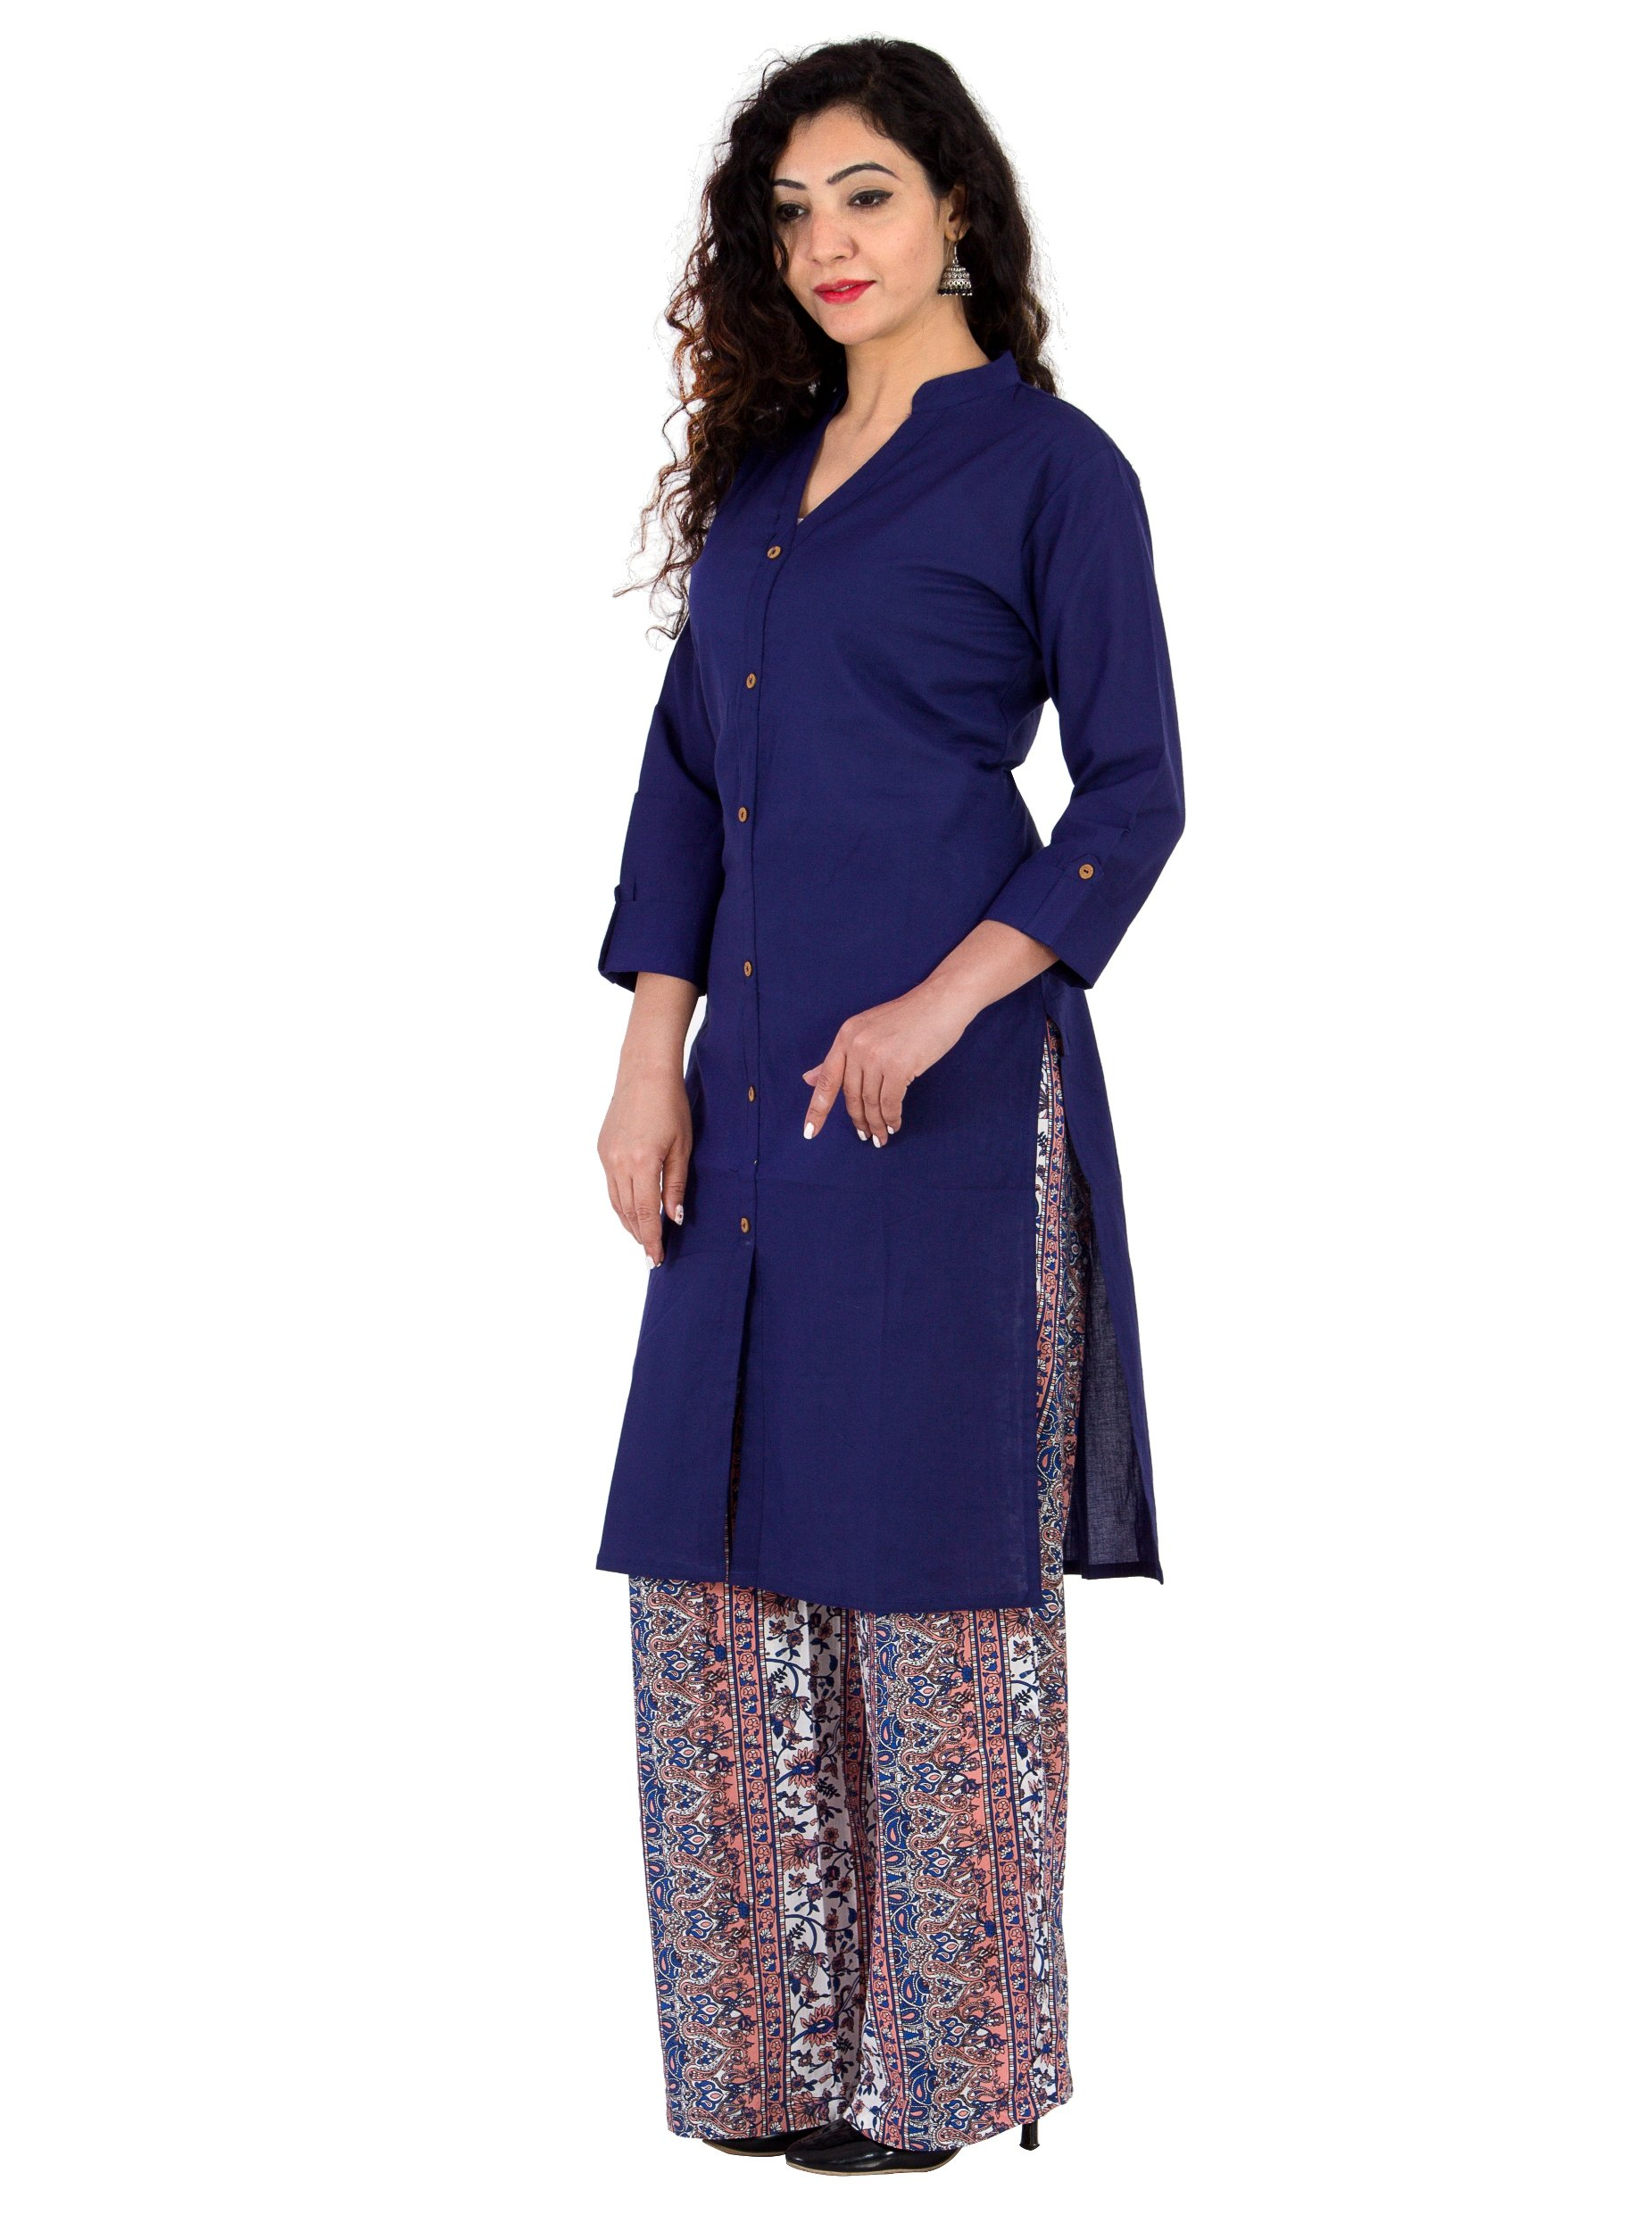 BrightJet Designer Purple Cotton Frontslit Women Fashion Kurti A-line Kurta Top Tunic with Rayon Printed Floral Plazzo Set Party Dress Casual (XL)